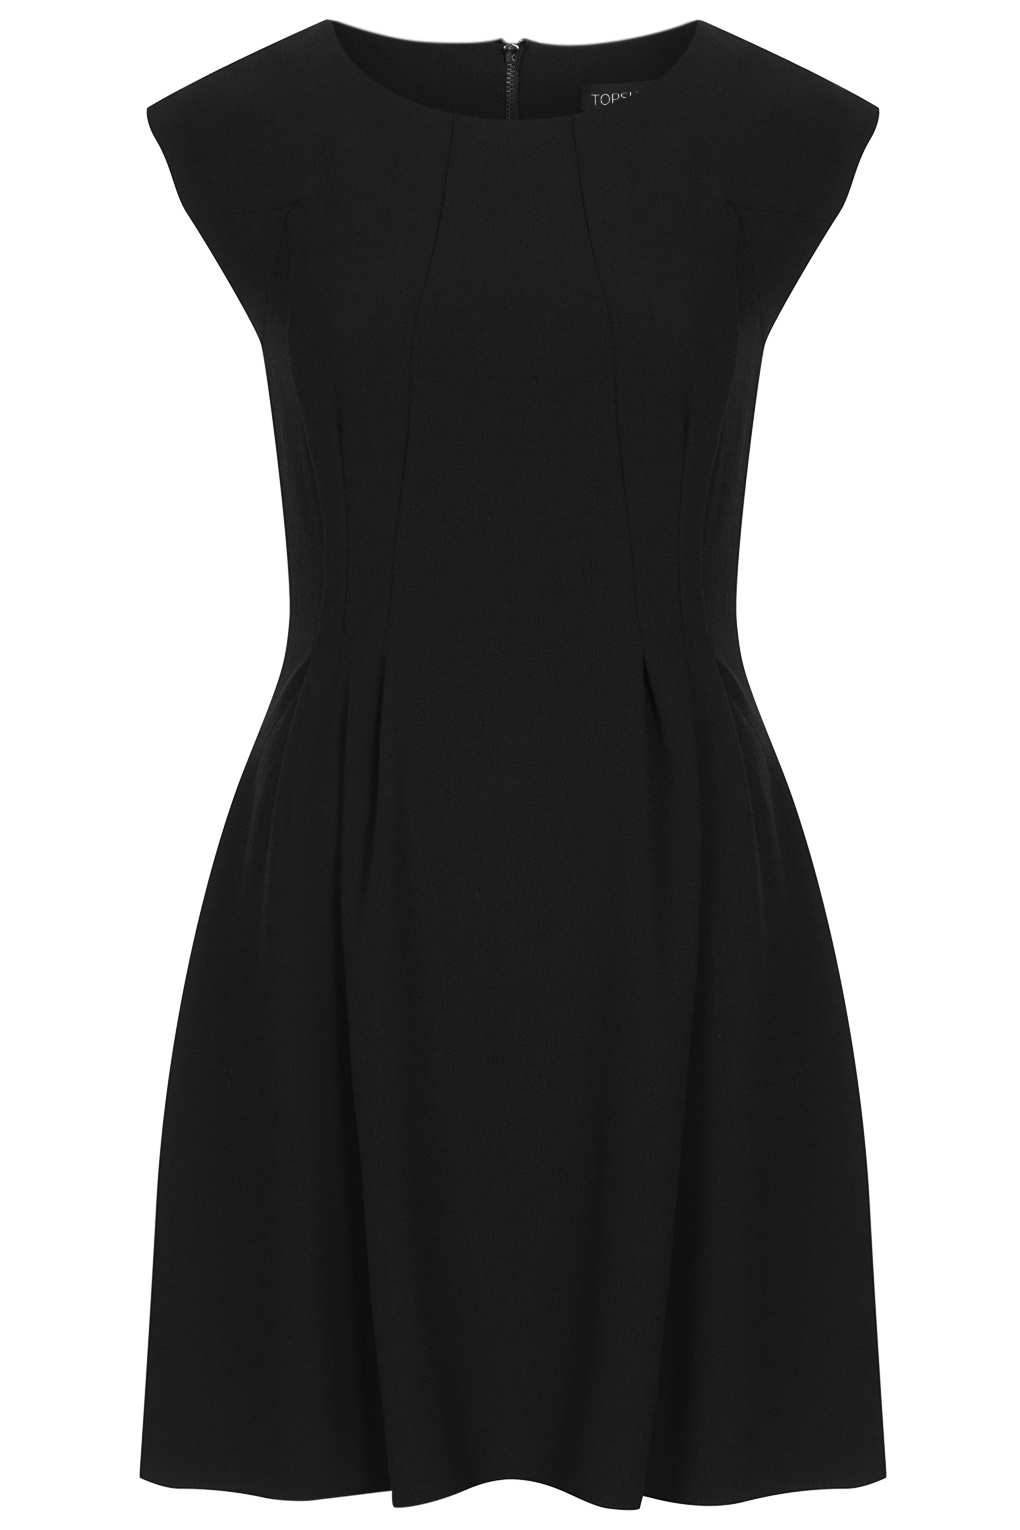 Lyst Topshop Crepe Seam Flippy Dress In Black